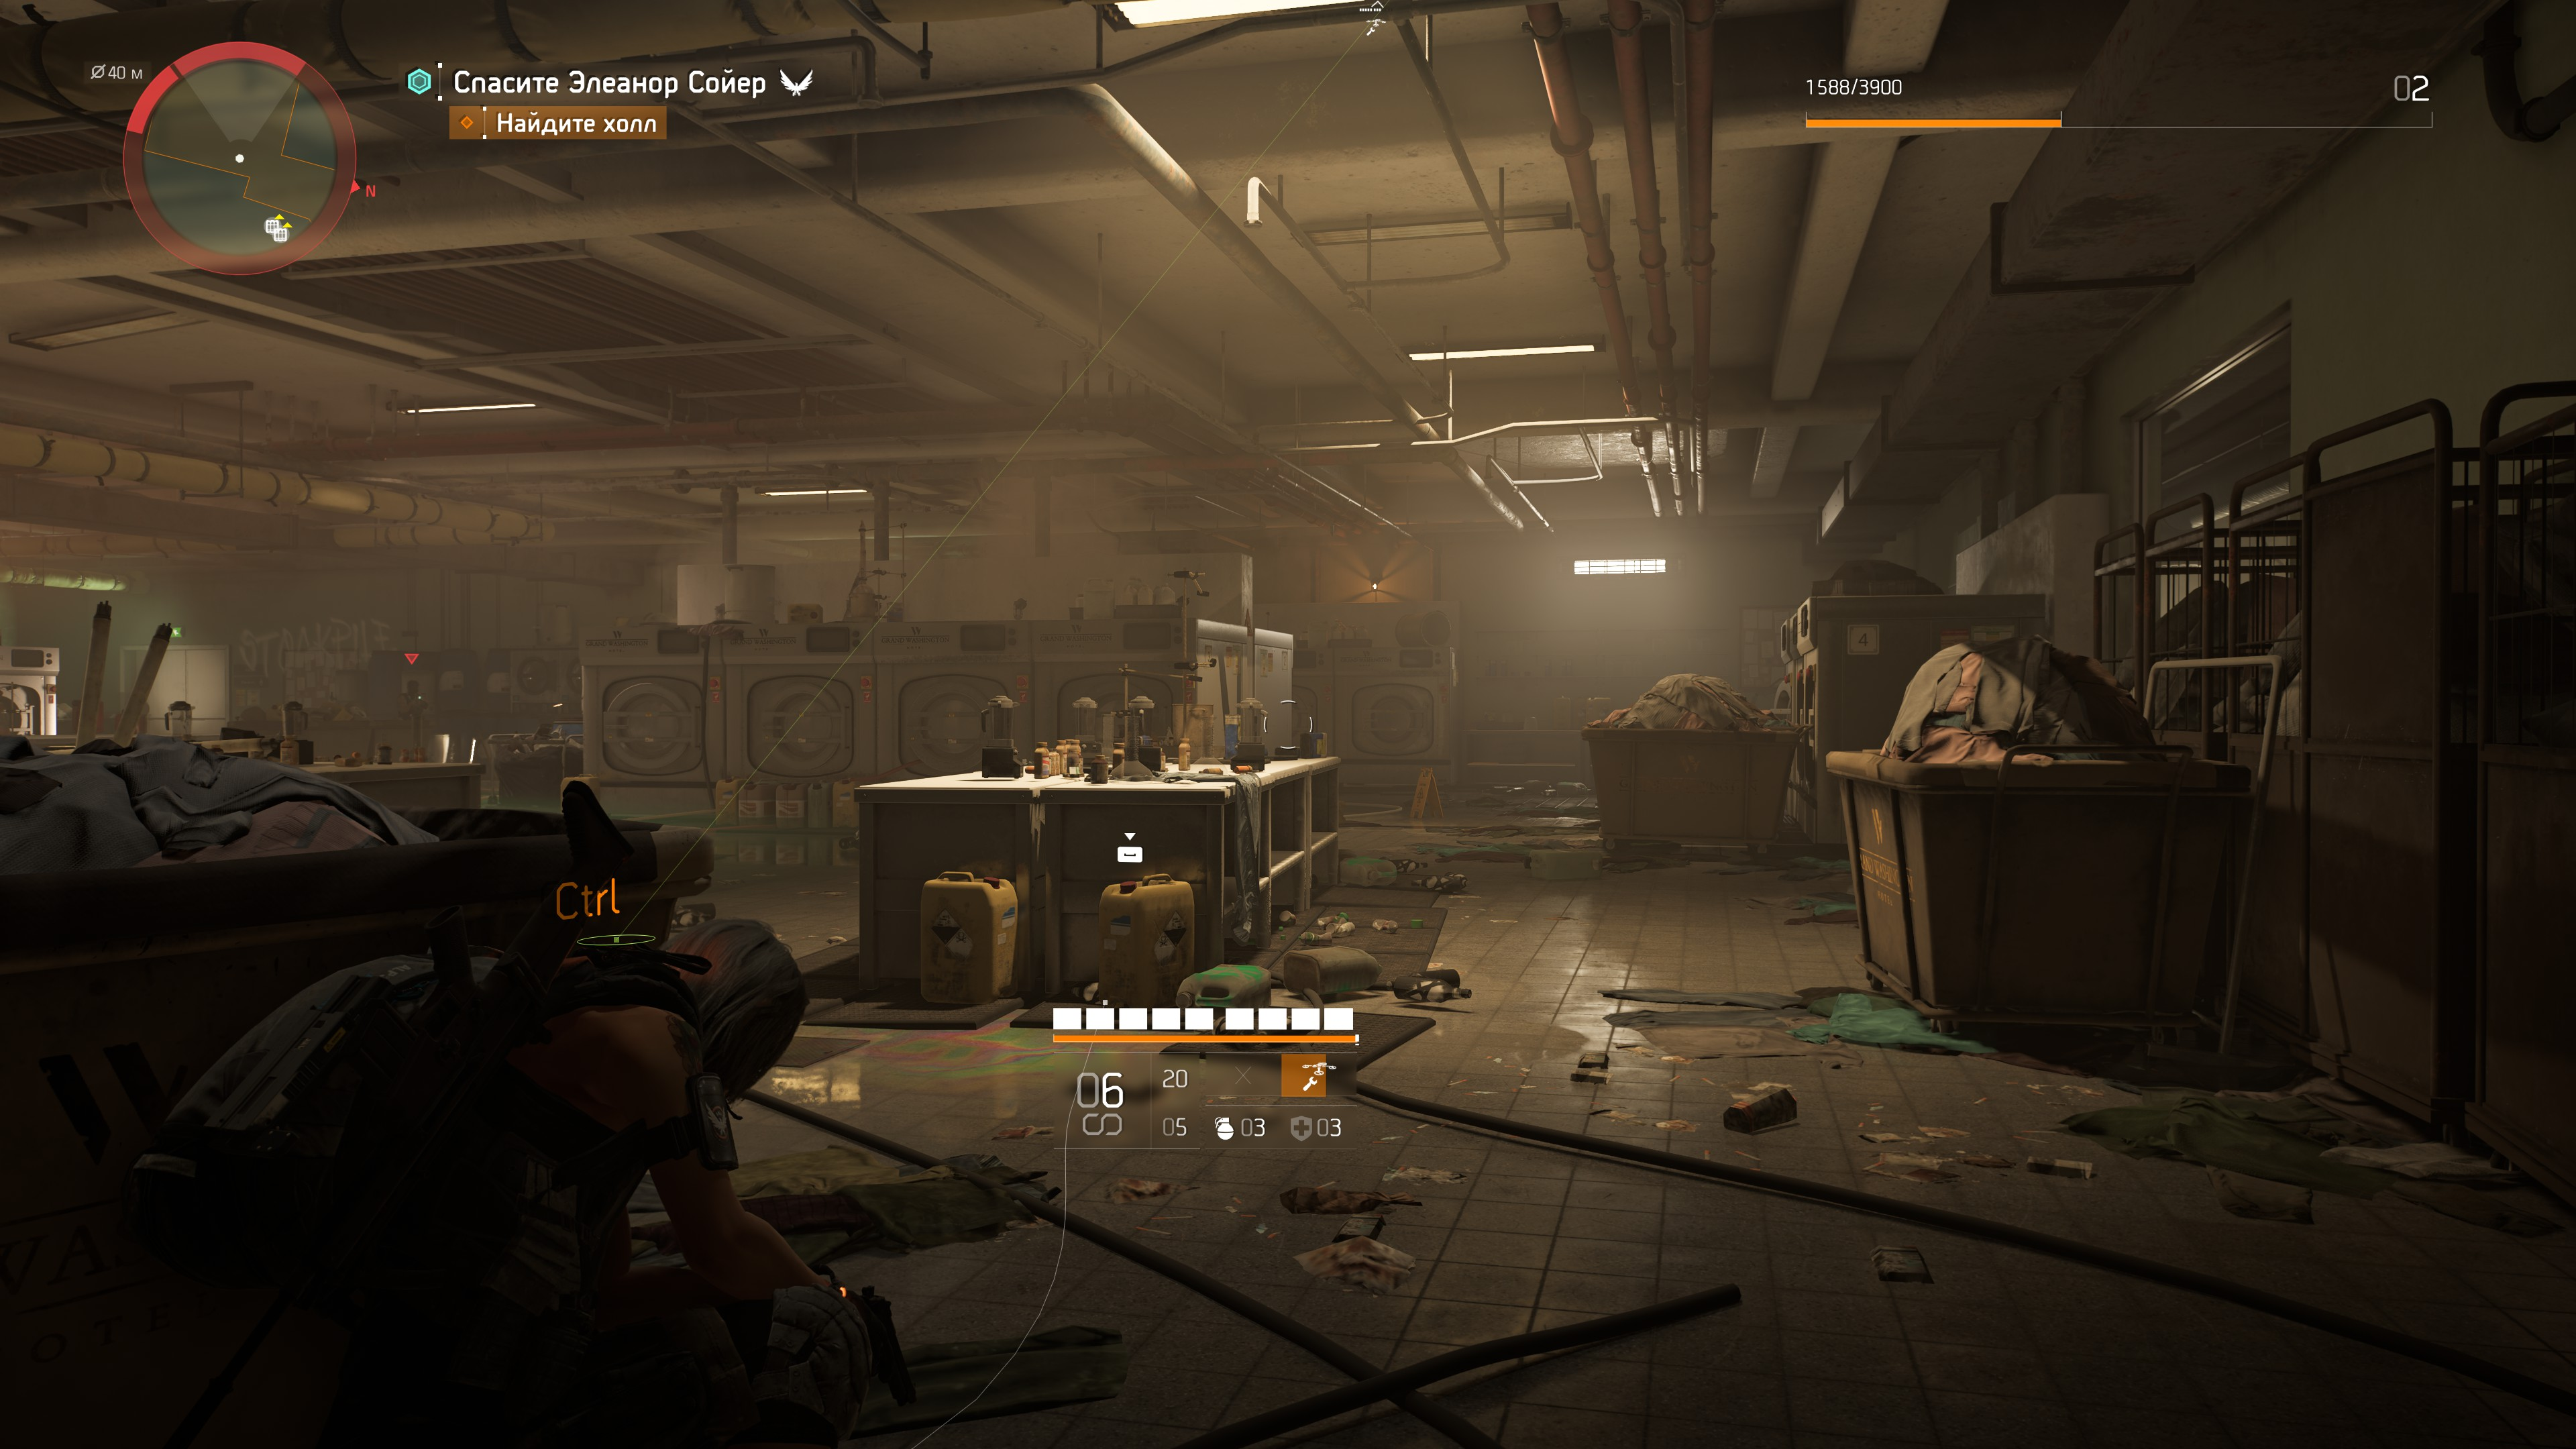 Tom Clancy's The Division® 22020-3-1-8-25-6.jpg - Tom Clancy's The Division 2